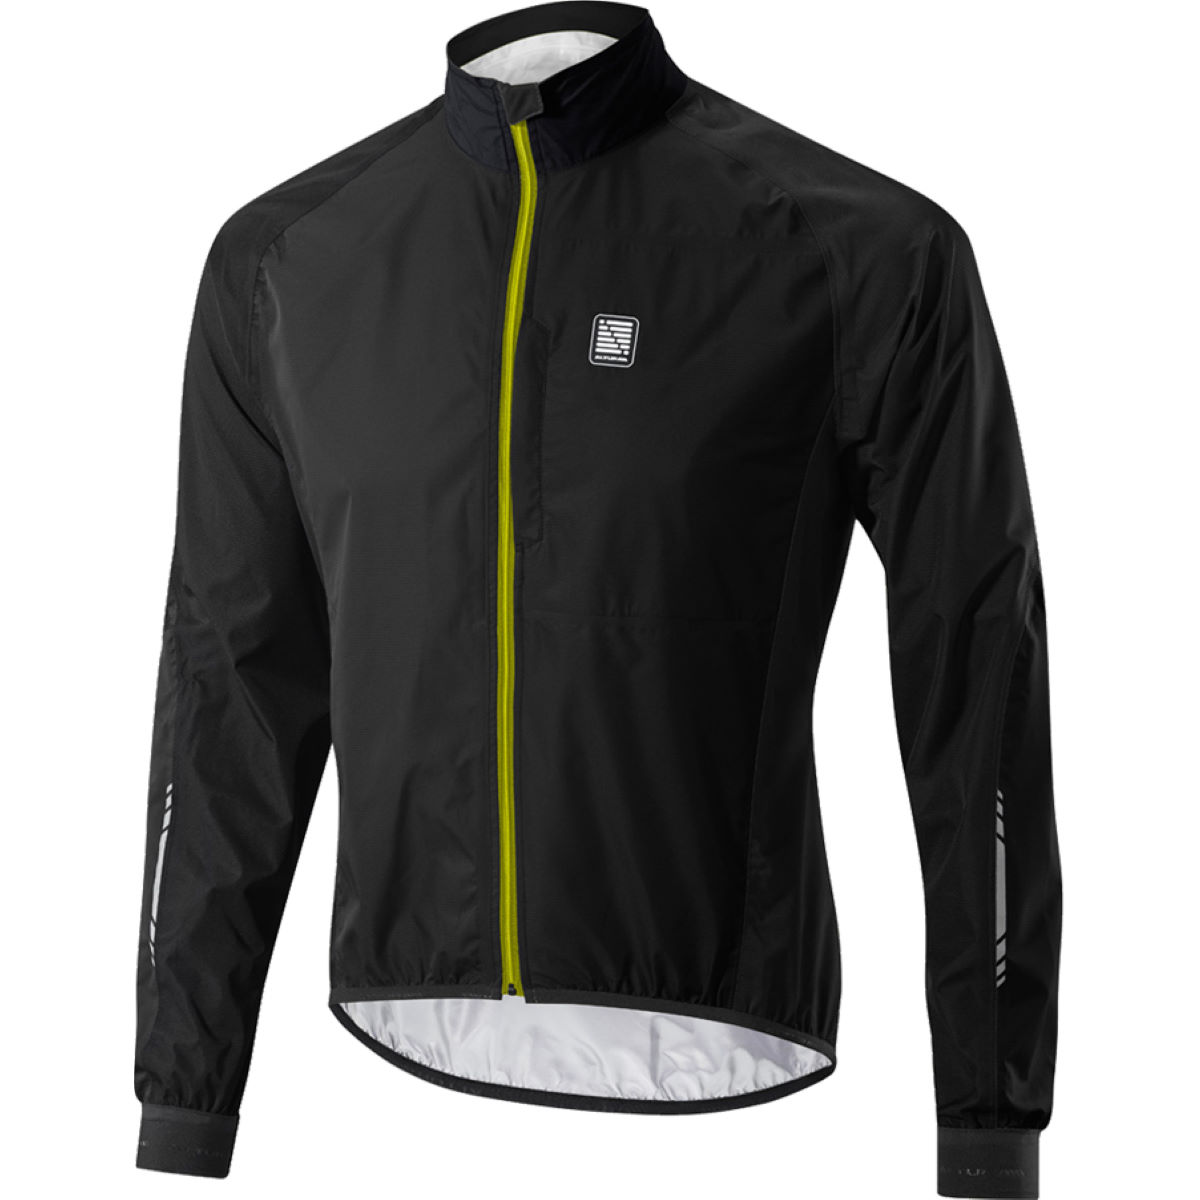 Altura Peloton Waterproof Jacket - Extra Extra Large Black/Yellow